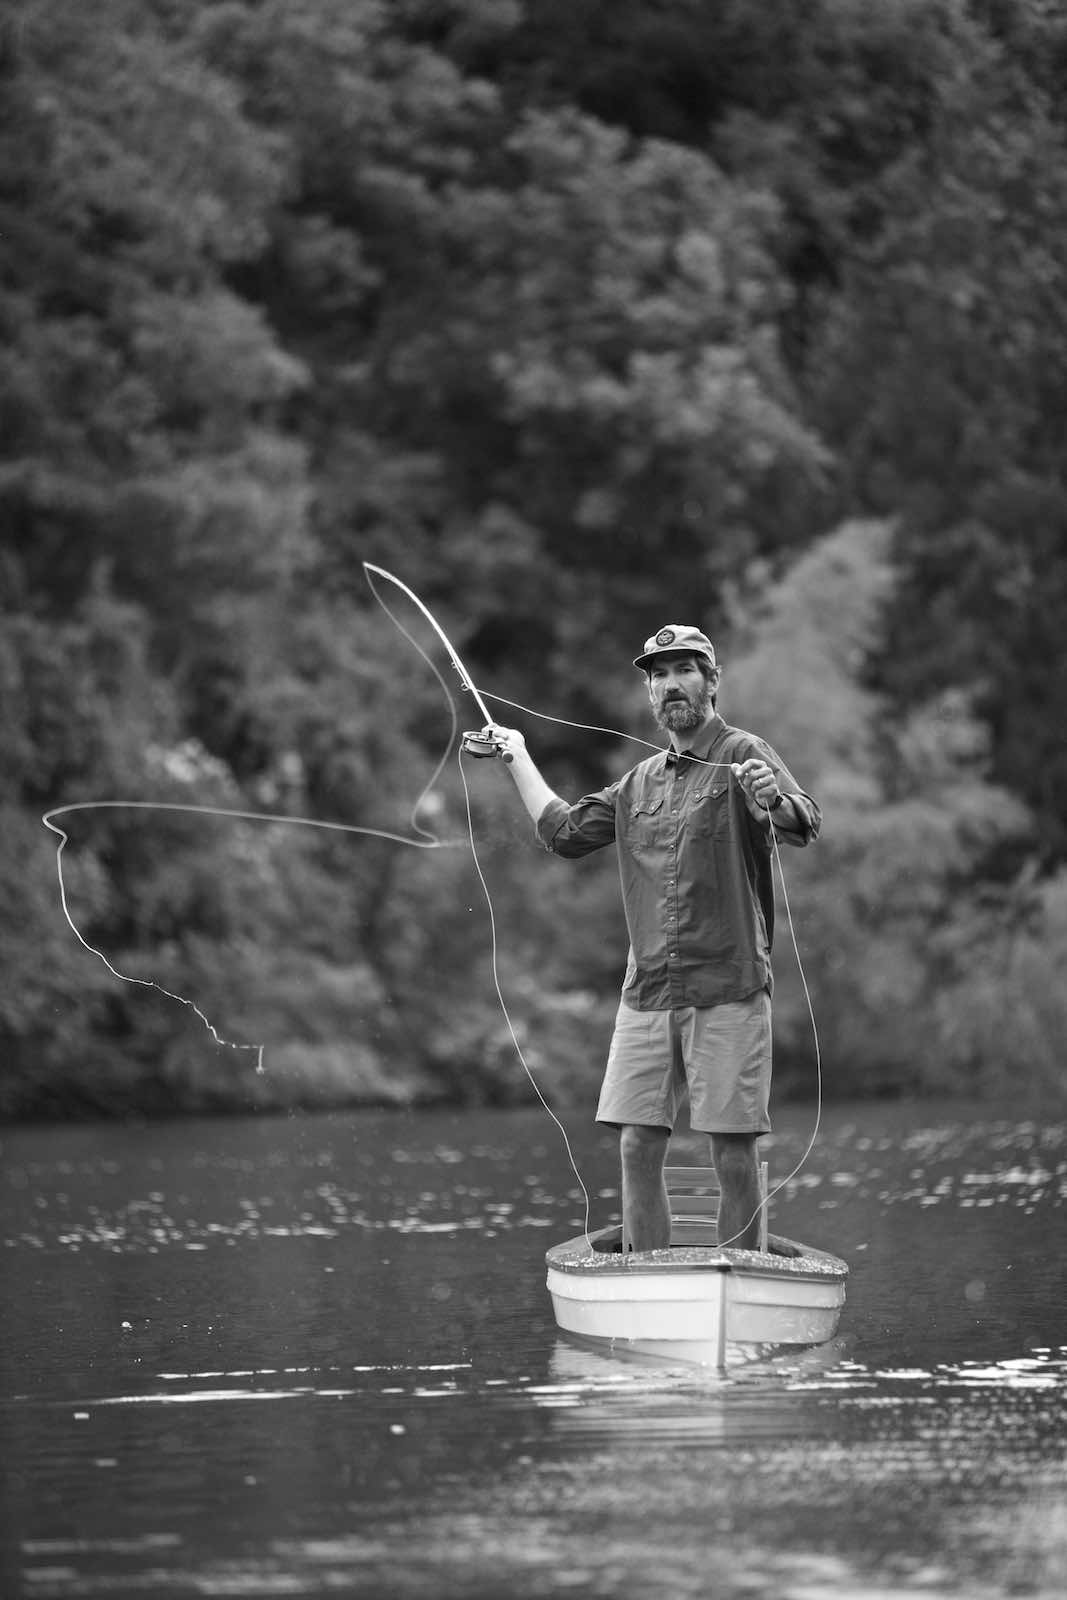 Jody Horton Photography - Fisherman casting a line while standing in a small boat, shot in B&W.